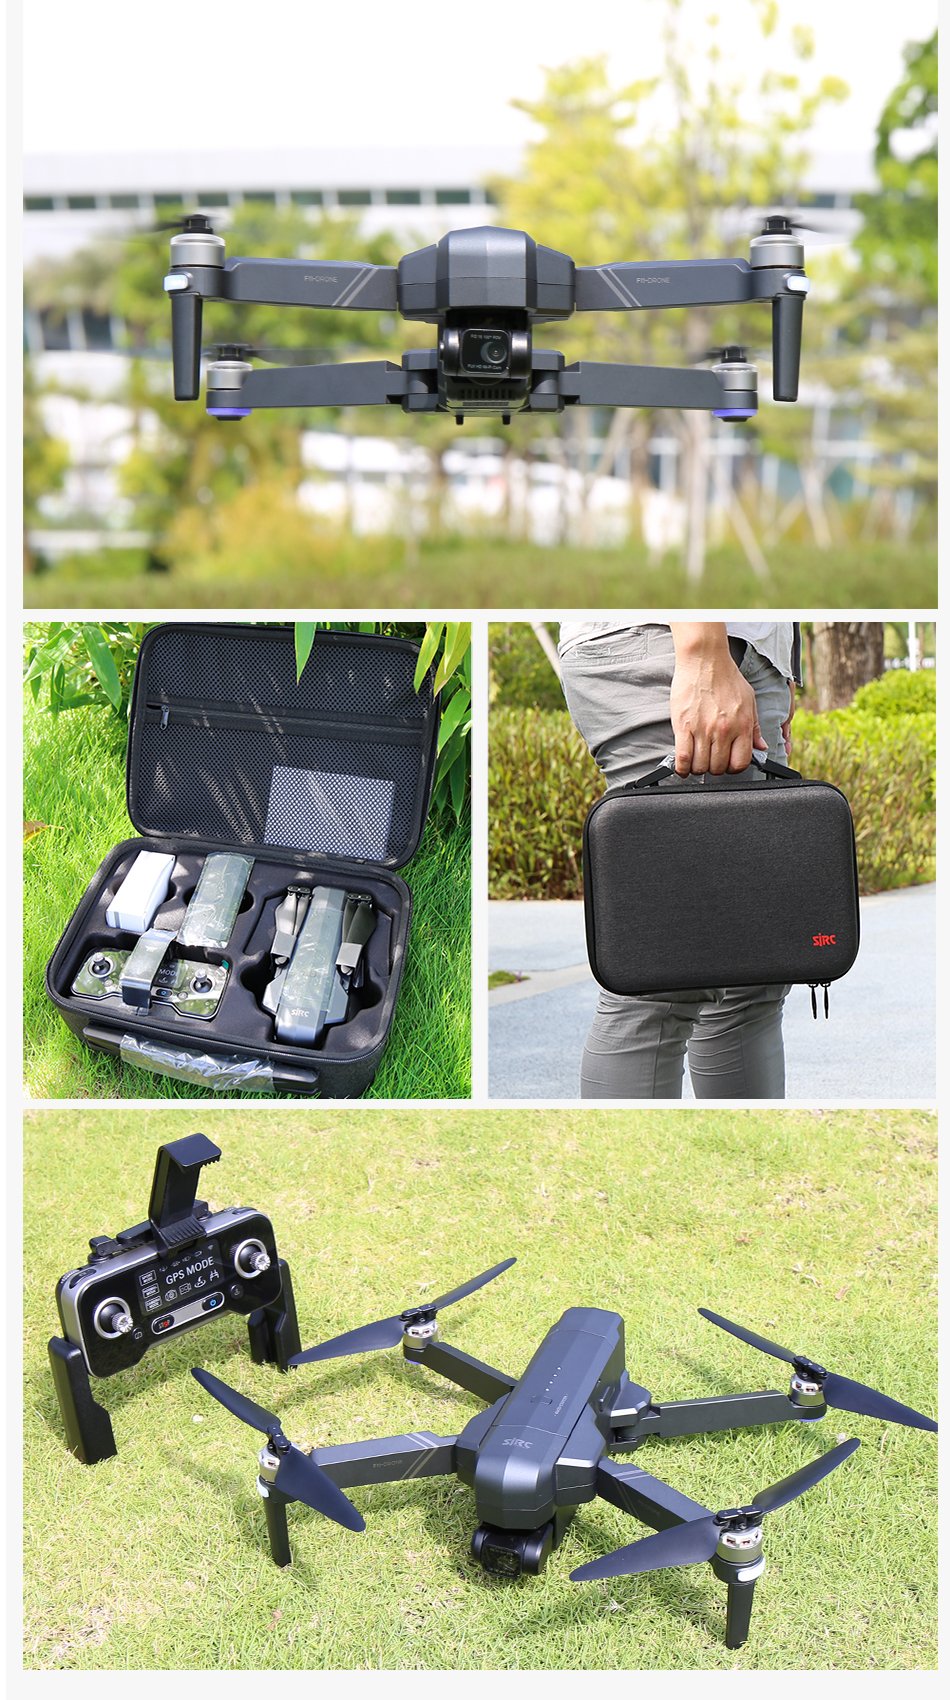 H332dd708302944d1916e4ecf9f5621d4P - SJRC F11 Pro 4K F11s Pro 2.5K Camera Drone GPS 5G FPV HD 2 Axis Stabilized Gimbal EIS Professional Brushless Quadcopter RC Dron